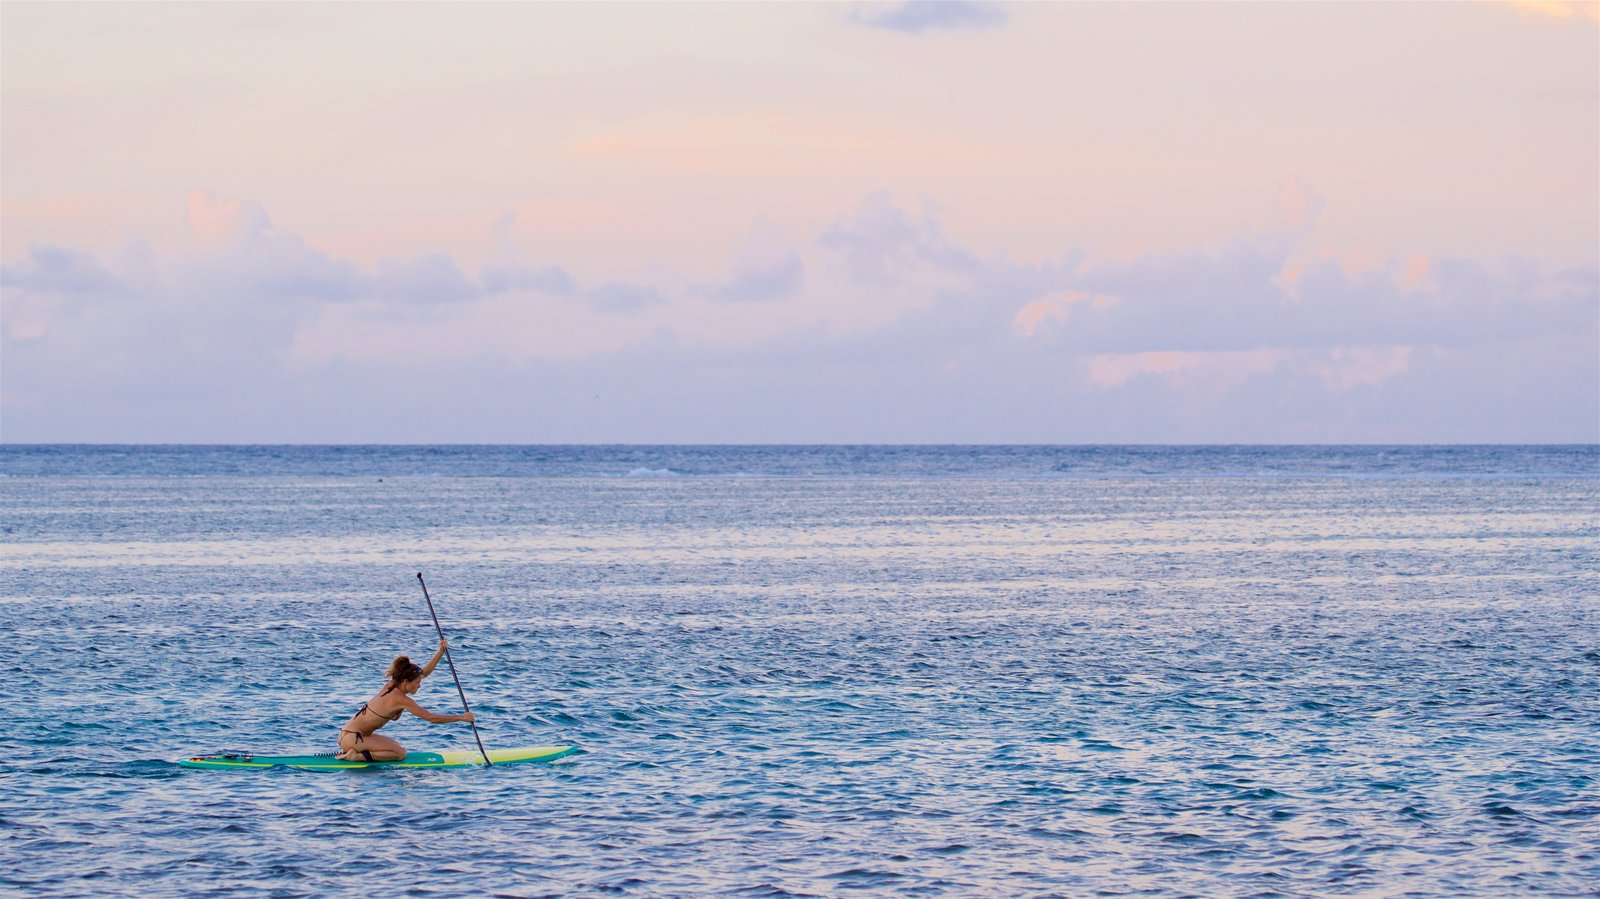 Tahiti featuring general coastal views, a sunset and kayaking or canoeing